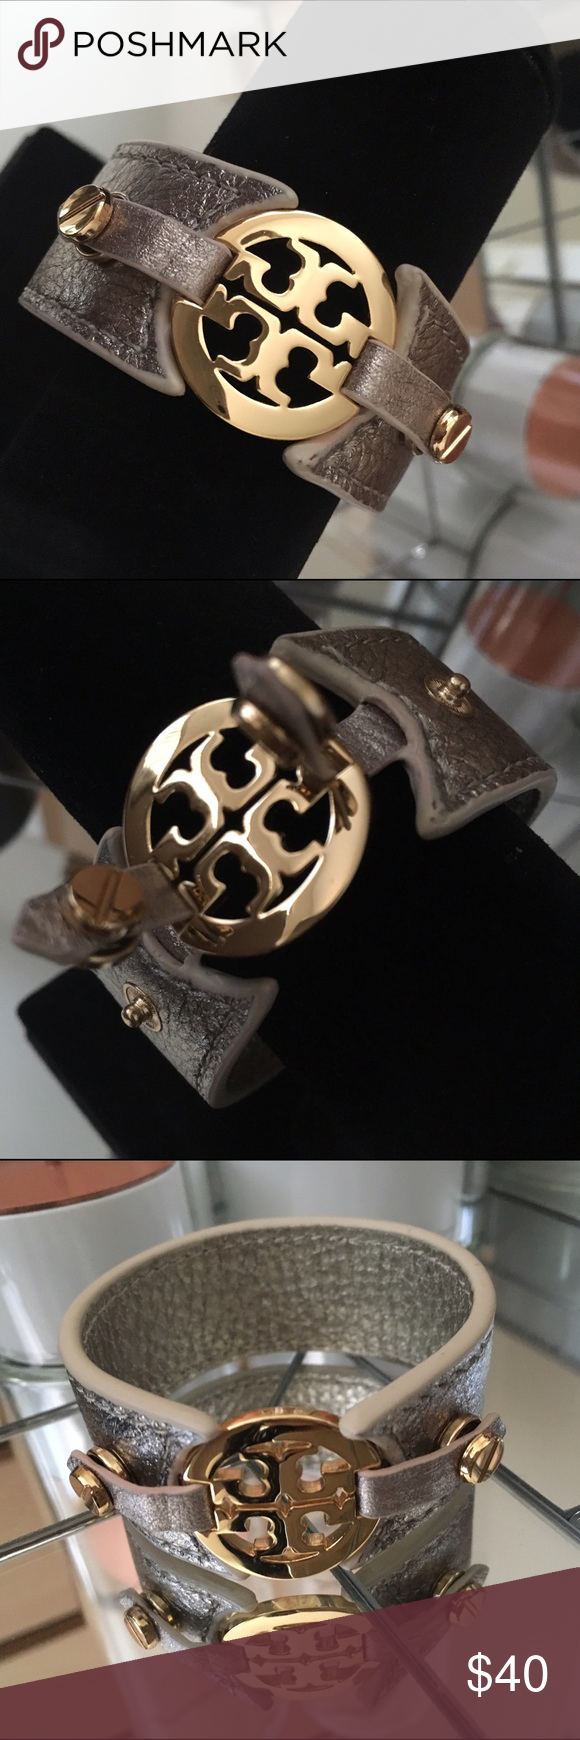 """Tory Burch Leather Cuff Like New // 1"""" Thick // Gold Hardware // Champagne Gold Colored Leather // I have a 6"""" wrist for reference  Tory Burch Jewelry Bracelets"""